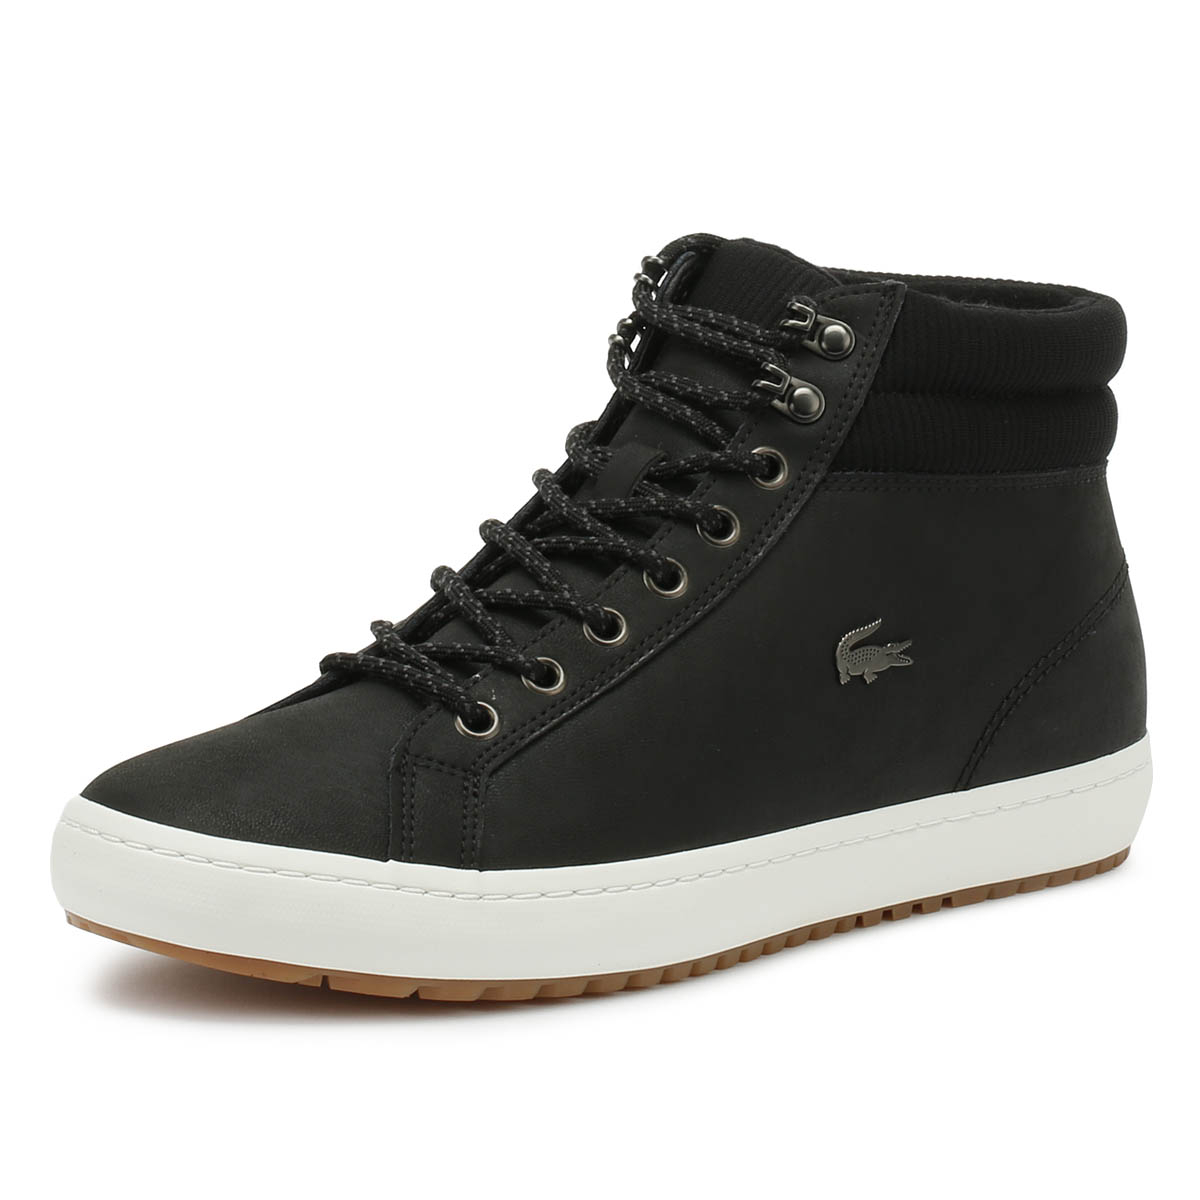 791637ef3 Details about Lacoste Mens Trainers Straightset Insulac 318 1 Black Sport  Casual Shoes